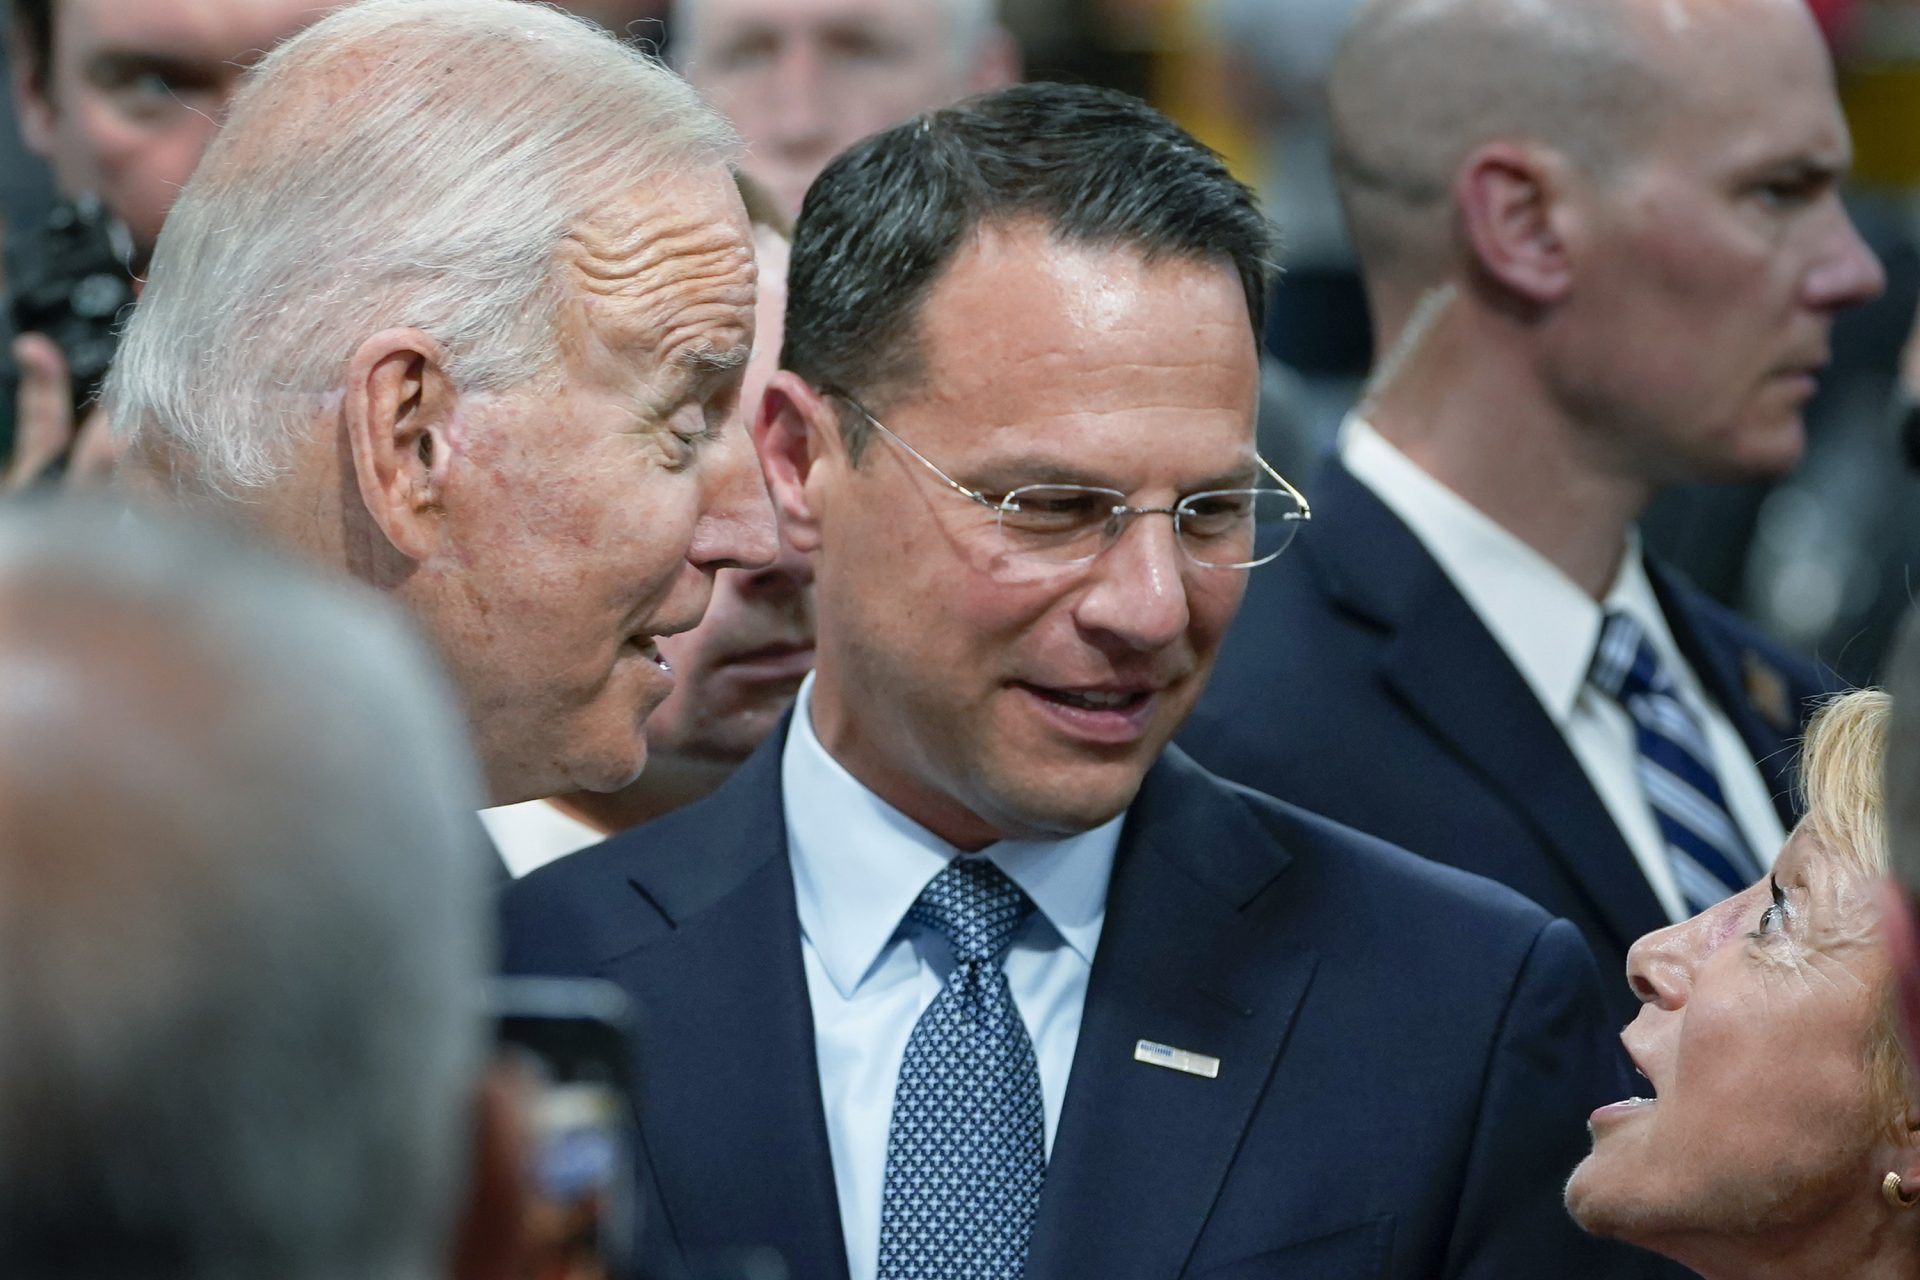 In this July 28, 2021 file photo Pennsylvania Attorney General Josh Shapiro, center, and President Joe Biden talk with people at the Lehigh Valley operations facility for Mack Trucks in Macungie, Pa.